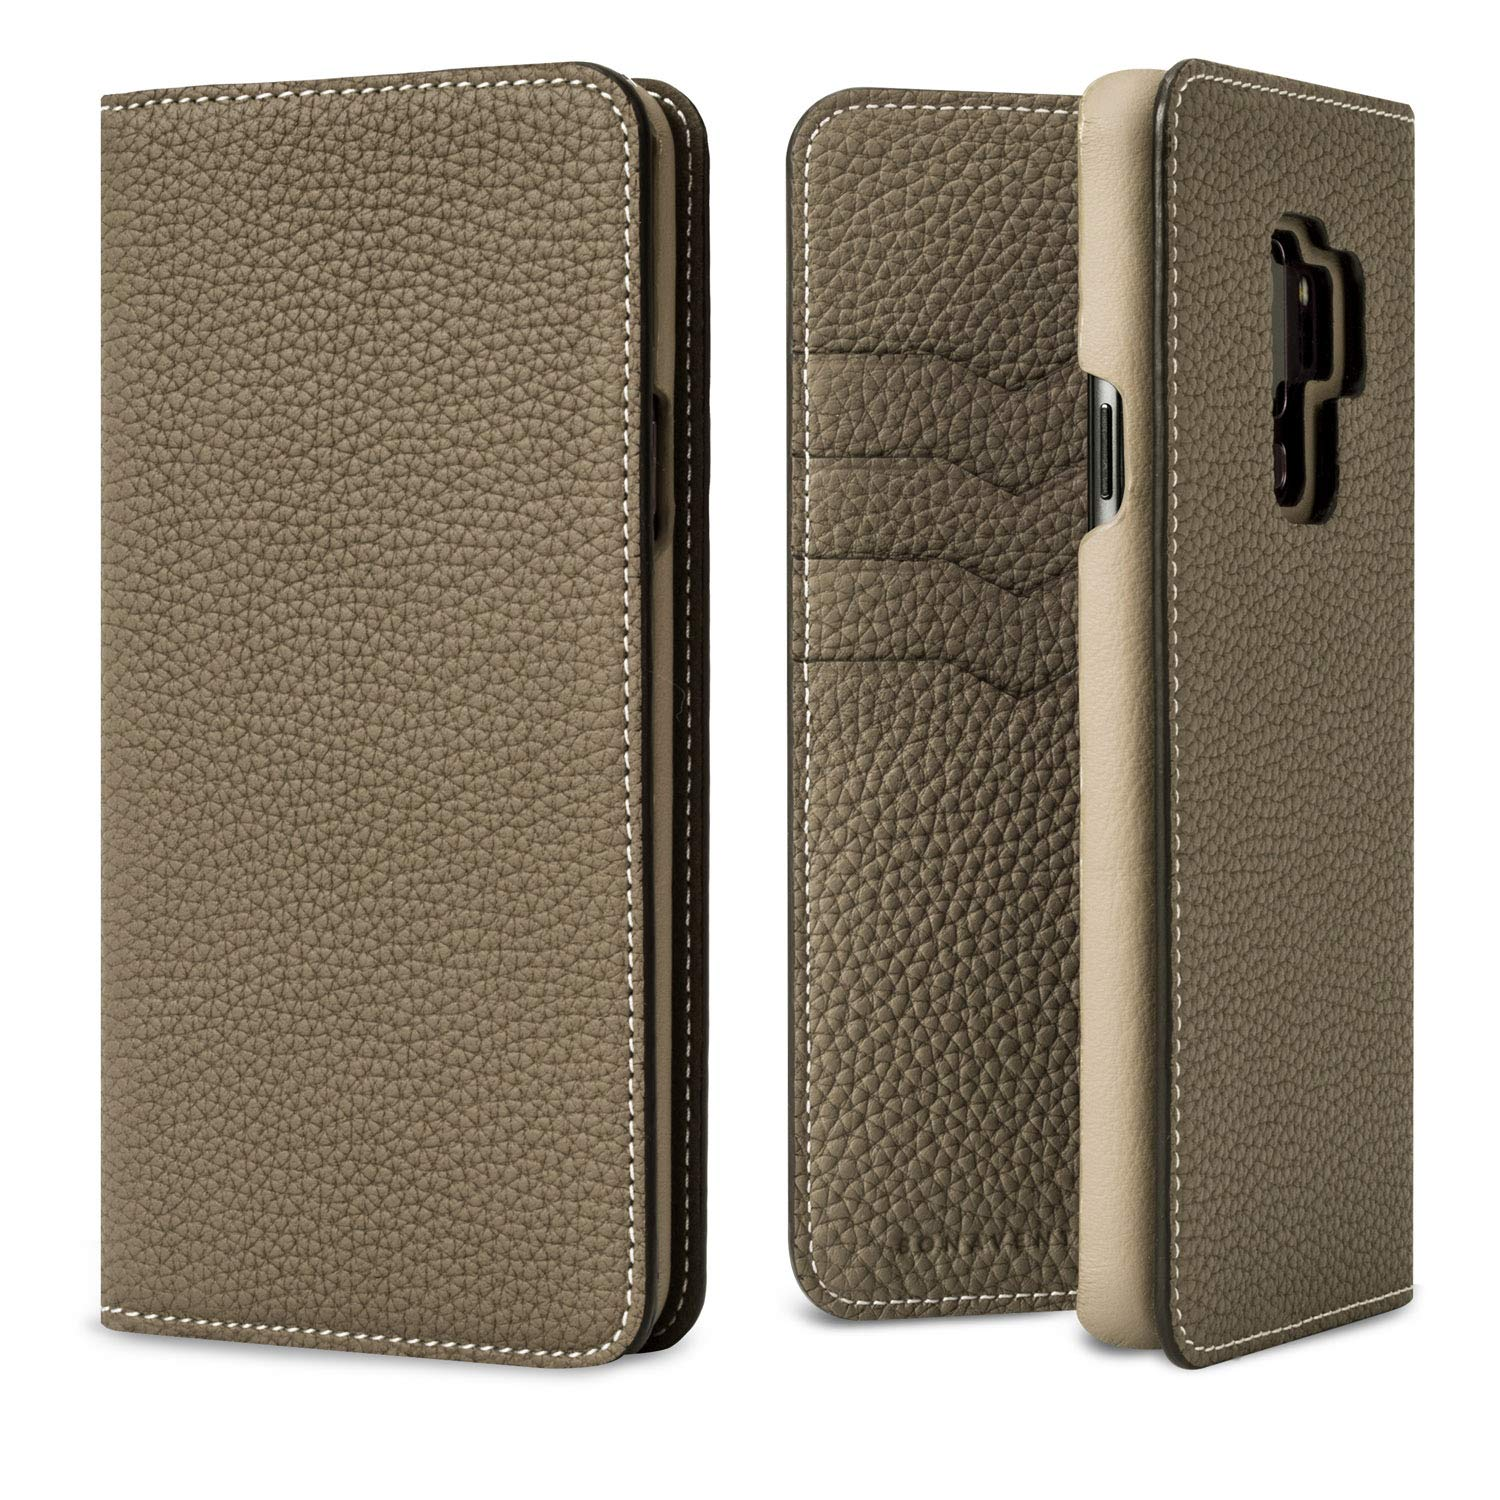 BONAVENTURA Galaxy S9+ Diary Leather Wallet Case [Galaxy S9+, Etoupe]